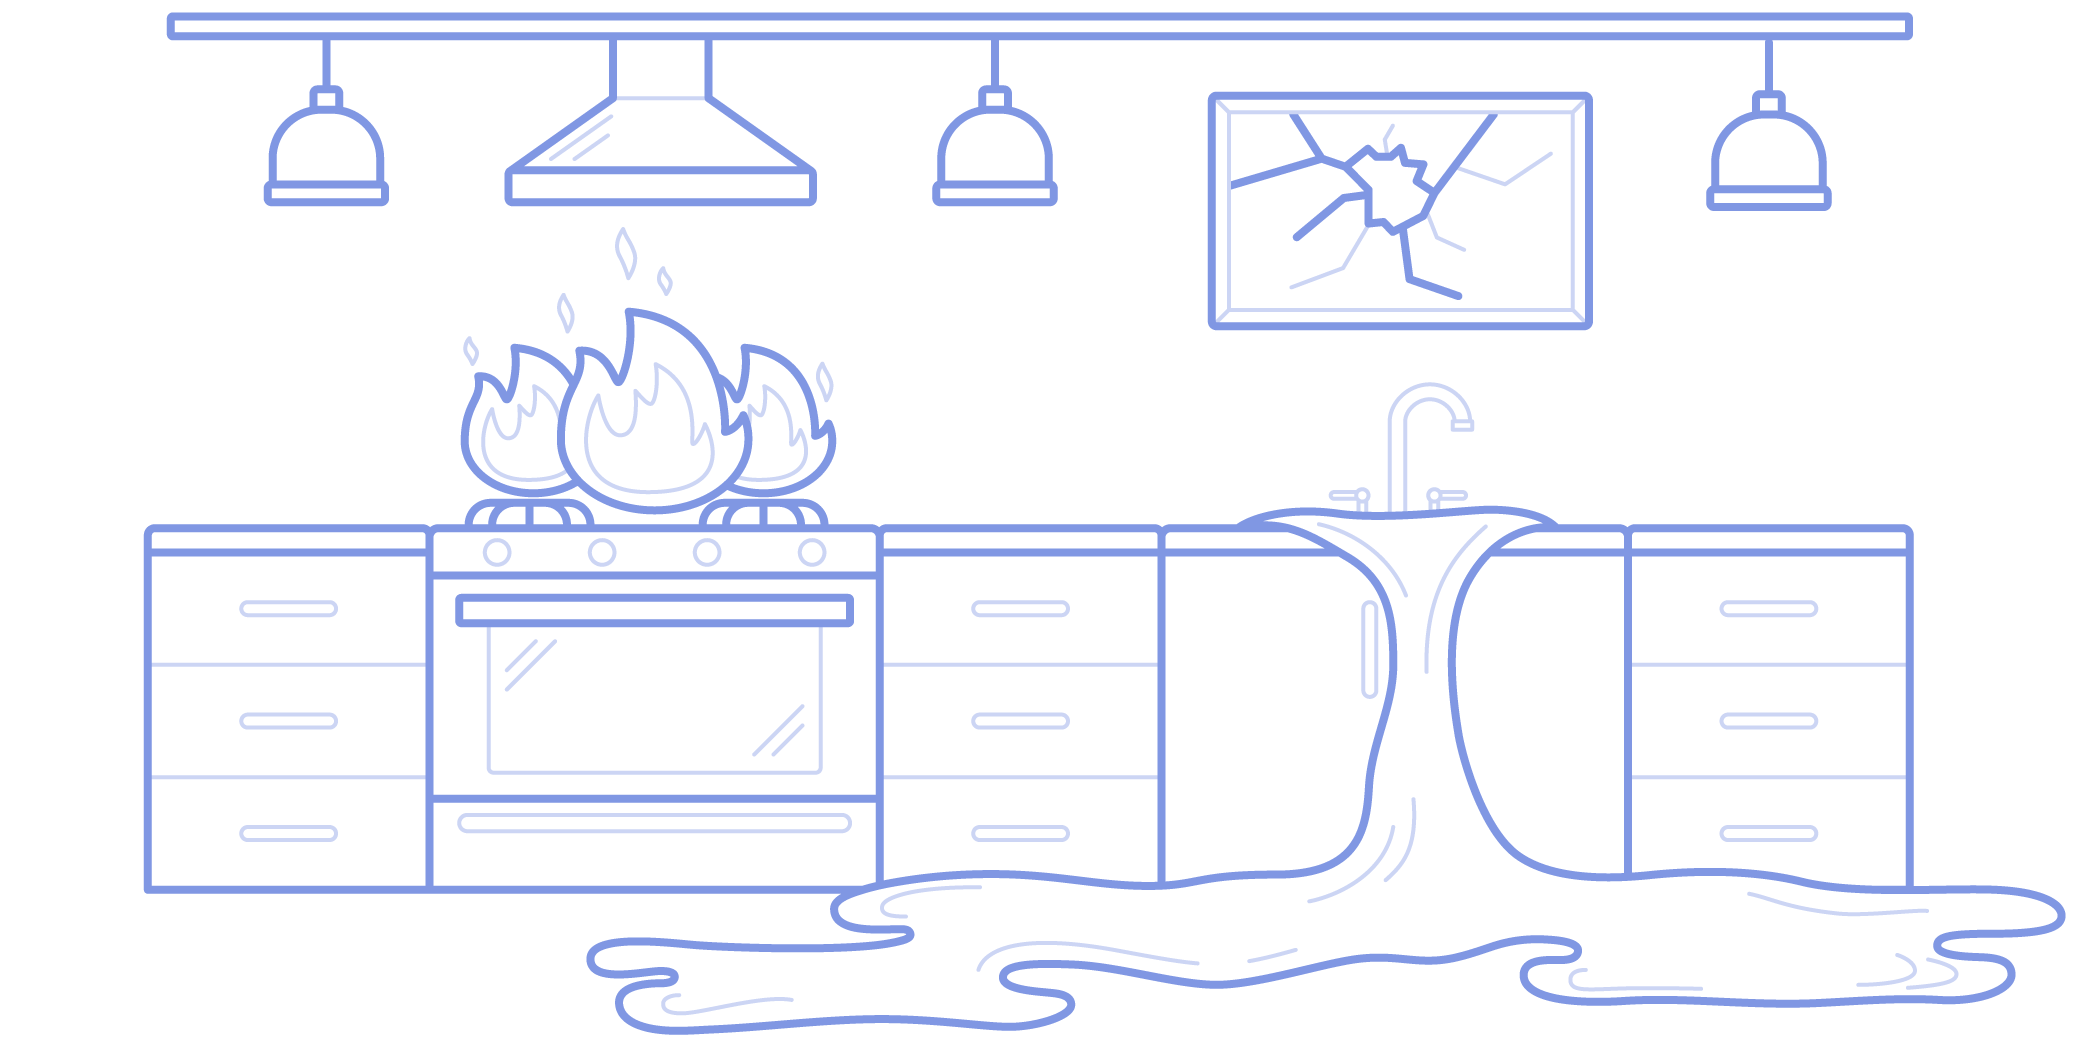 Kitchen stove fire, sink overflow & broken window, representing AppFolio insurance - illustration.